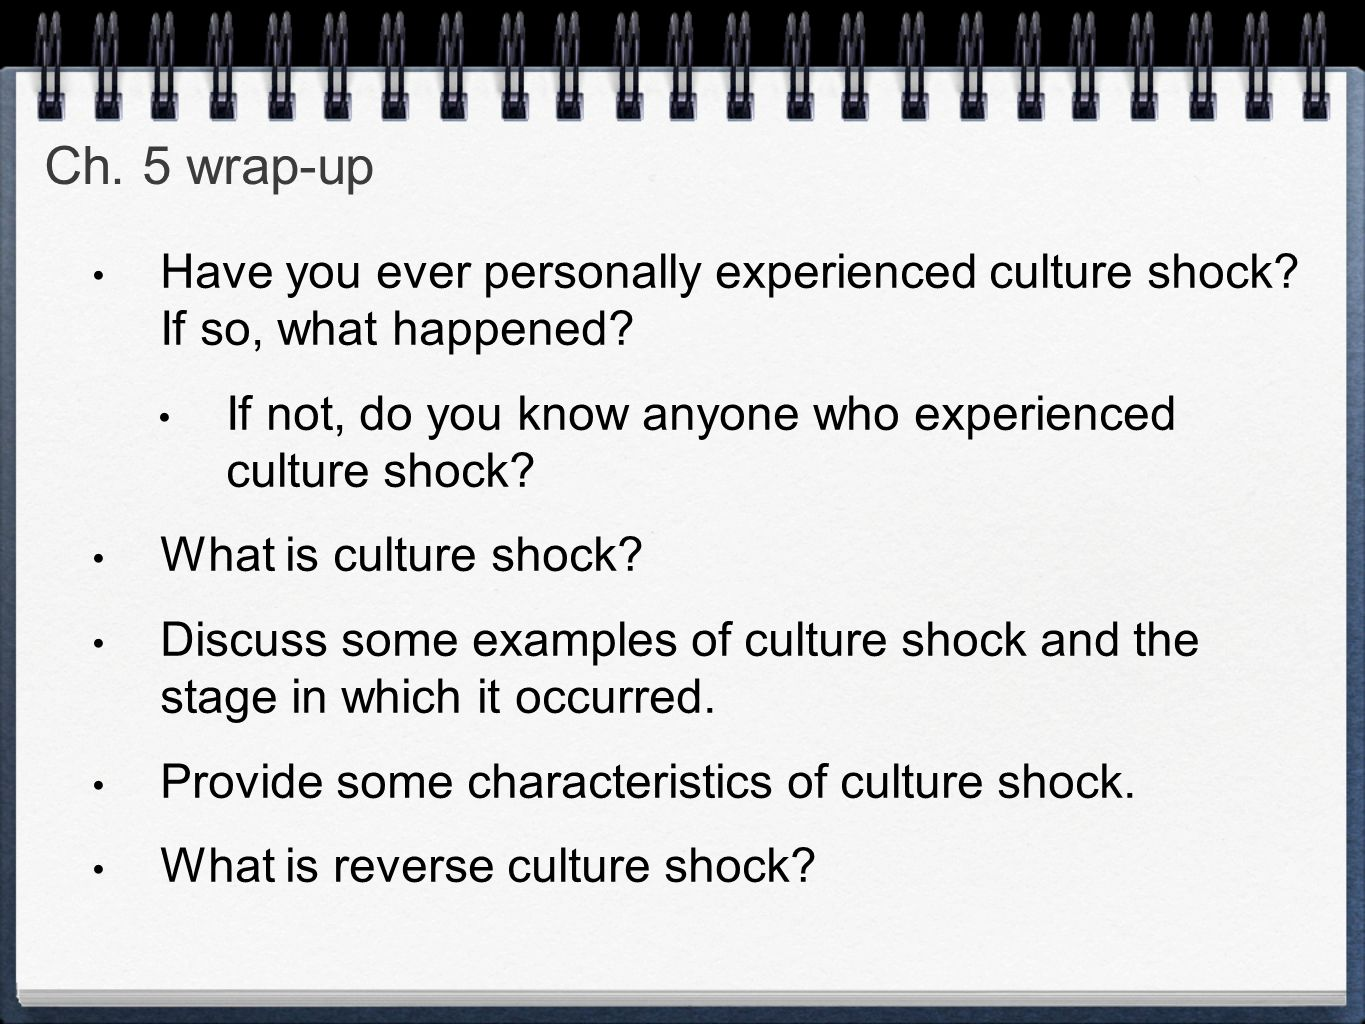 confronting the yanomamo the experience of cultural shock Resources: thinking globally box in ch 2 of society read the thinking globally: confronting the yanomamo: the experience of culture shock box (p 41) in ch 2 of the text, then respond to the following questions in 200- to 300-words: if you were visiting and studying the yanomamo, describe what you would have done to prepare yourself for.